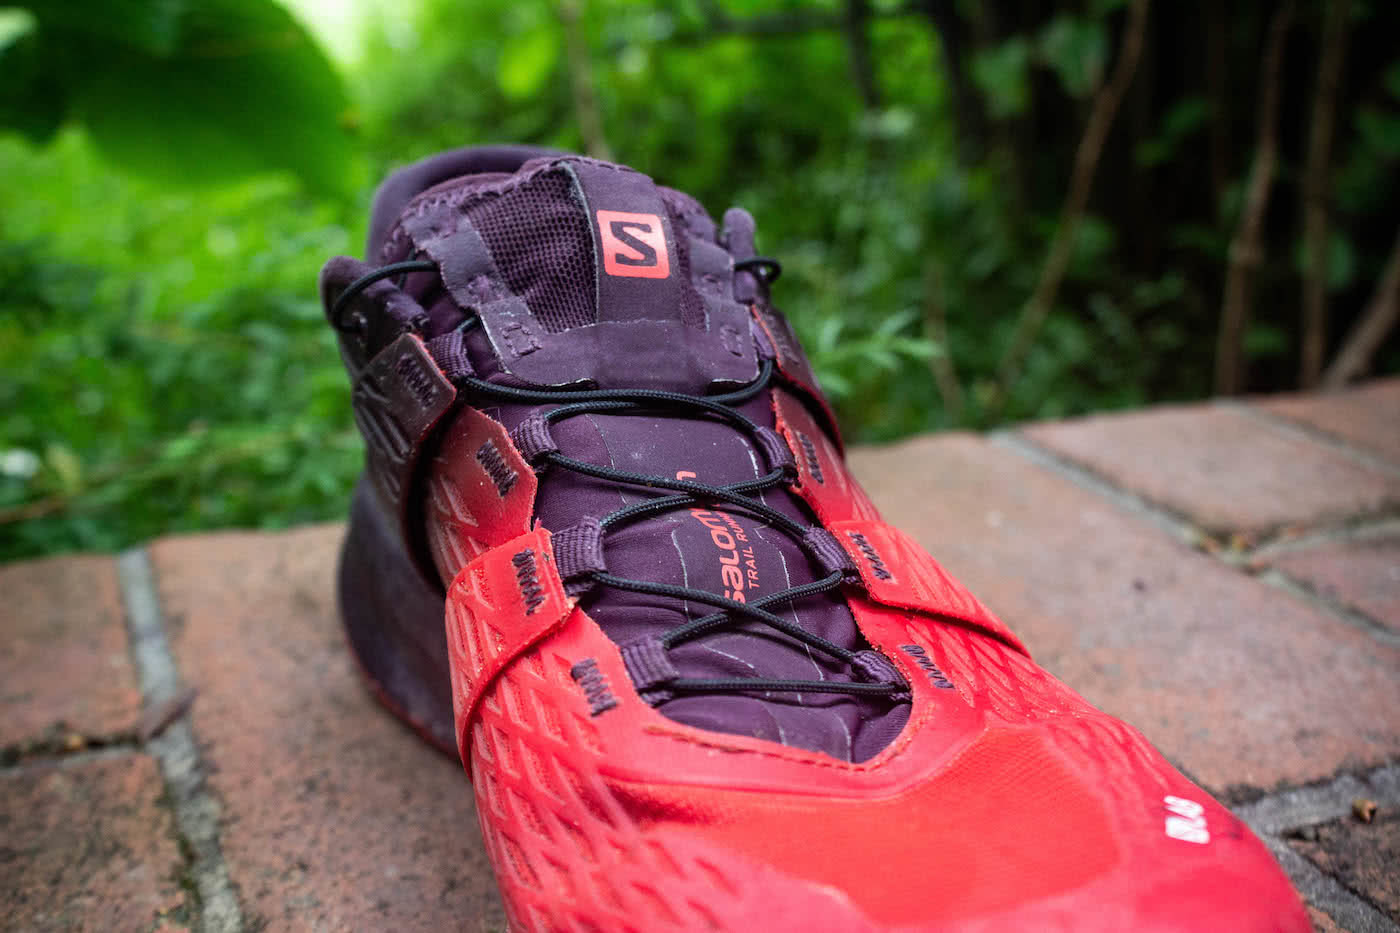 premium selection d3da8 ddc6d Salomon S/LAB Ultra // Gear Review - We Are Explorers